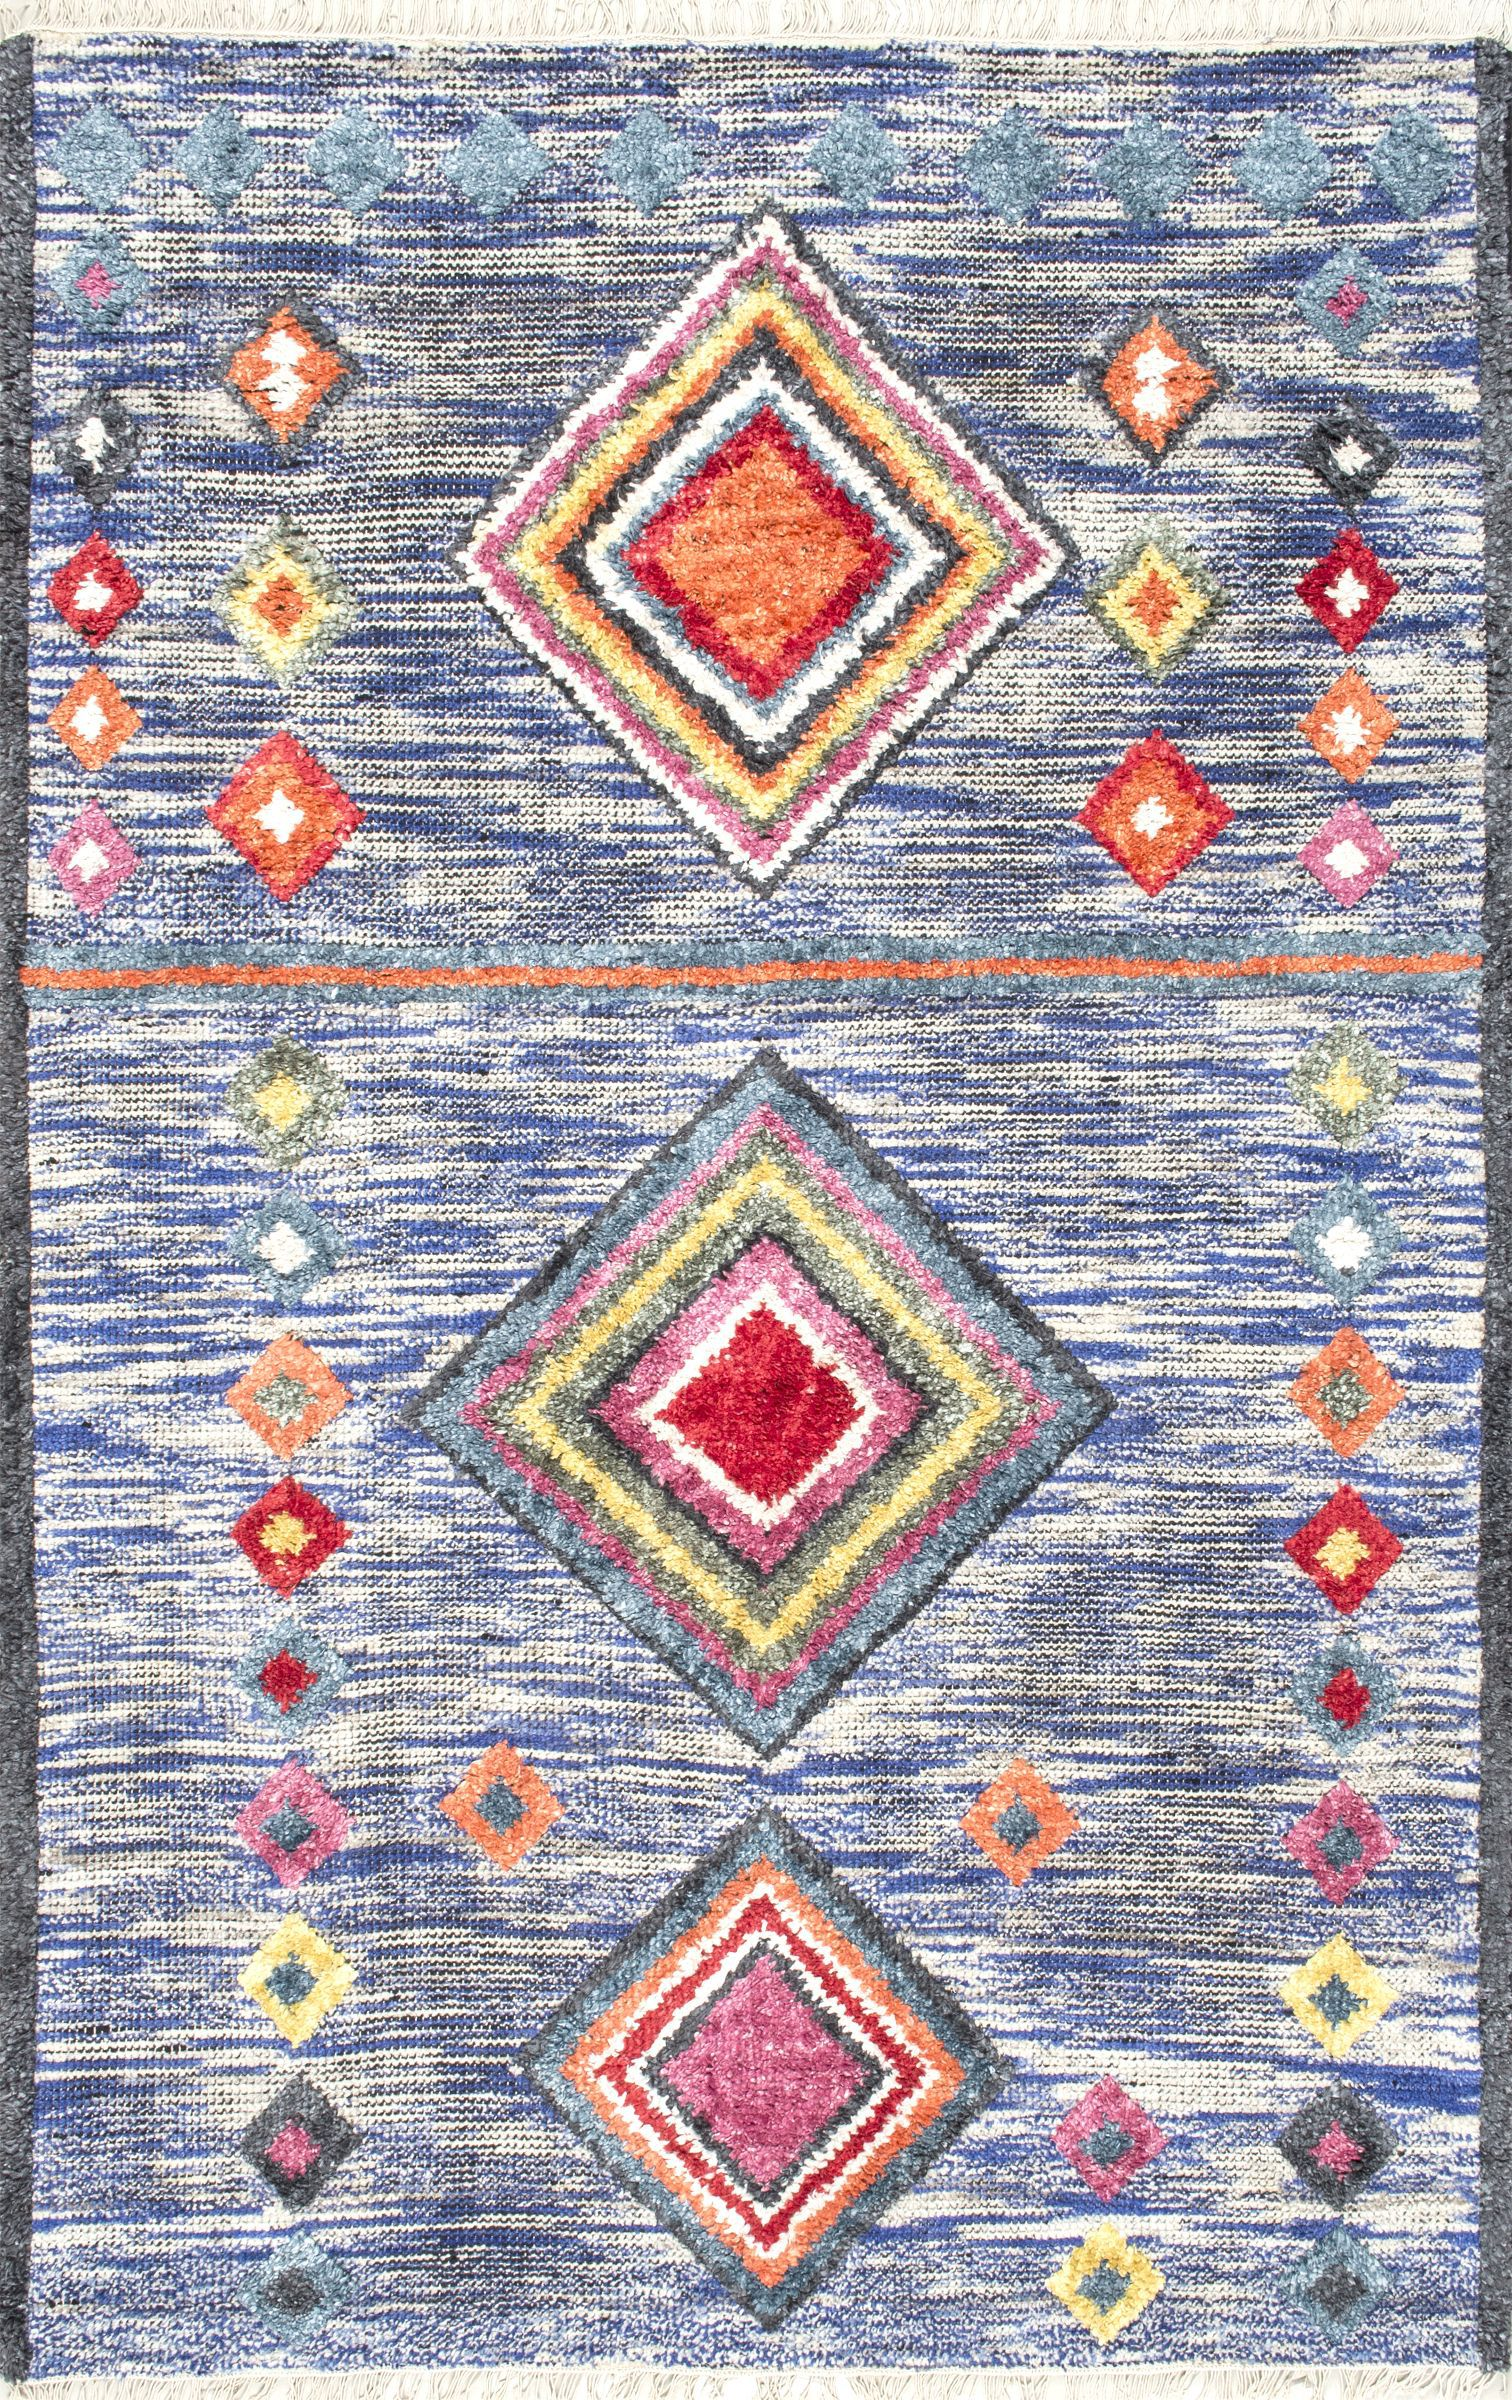 Rugs Usa Area Rugs In Many Styles Including Contemporary Braided Outdoor And Flokati Shag Rugs Rugs Area Rugs Geometric Rug